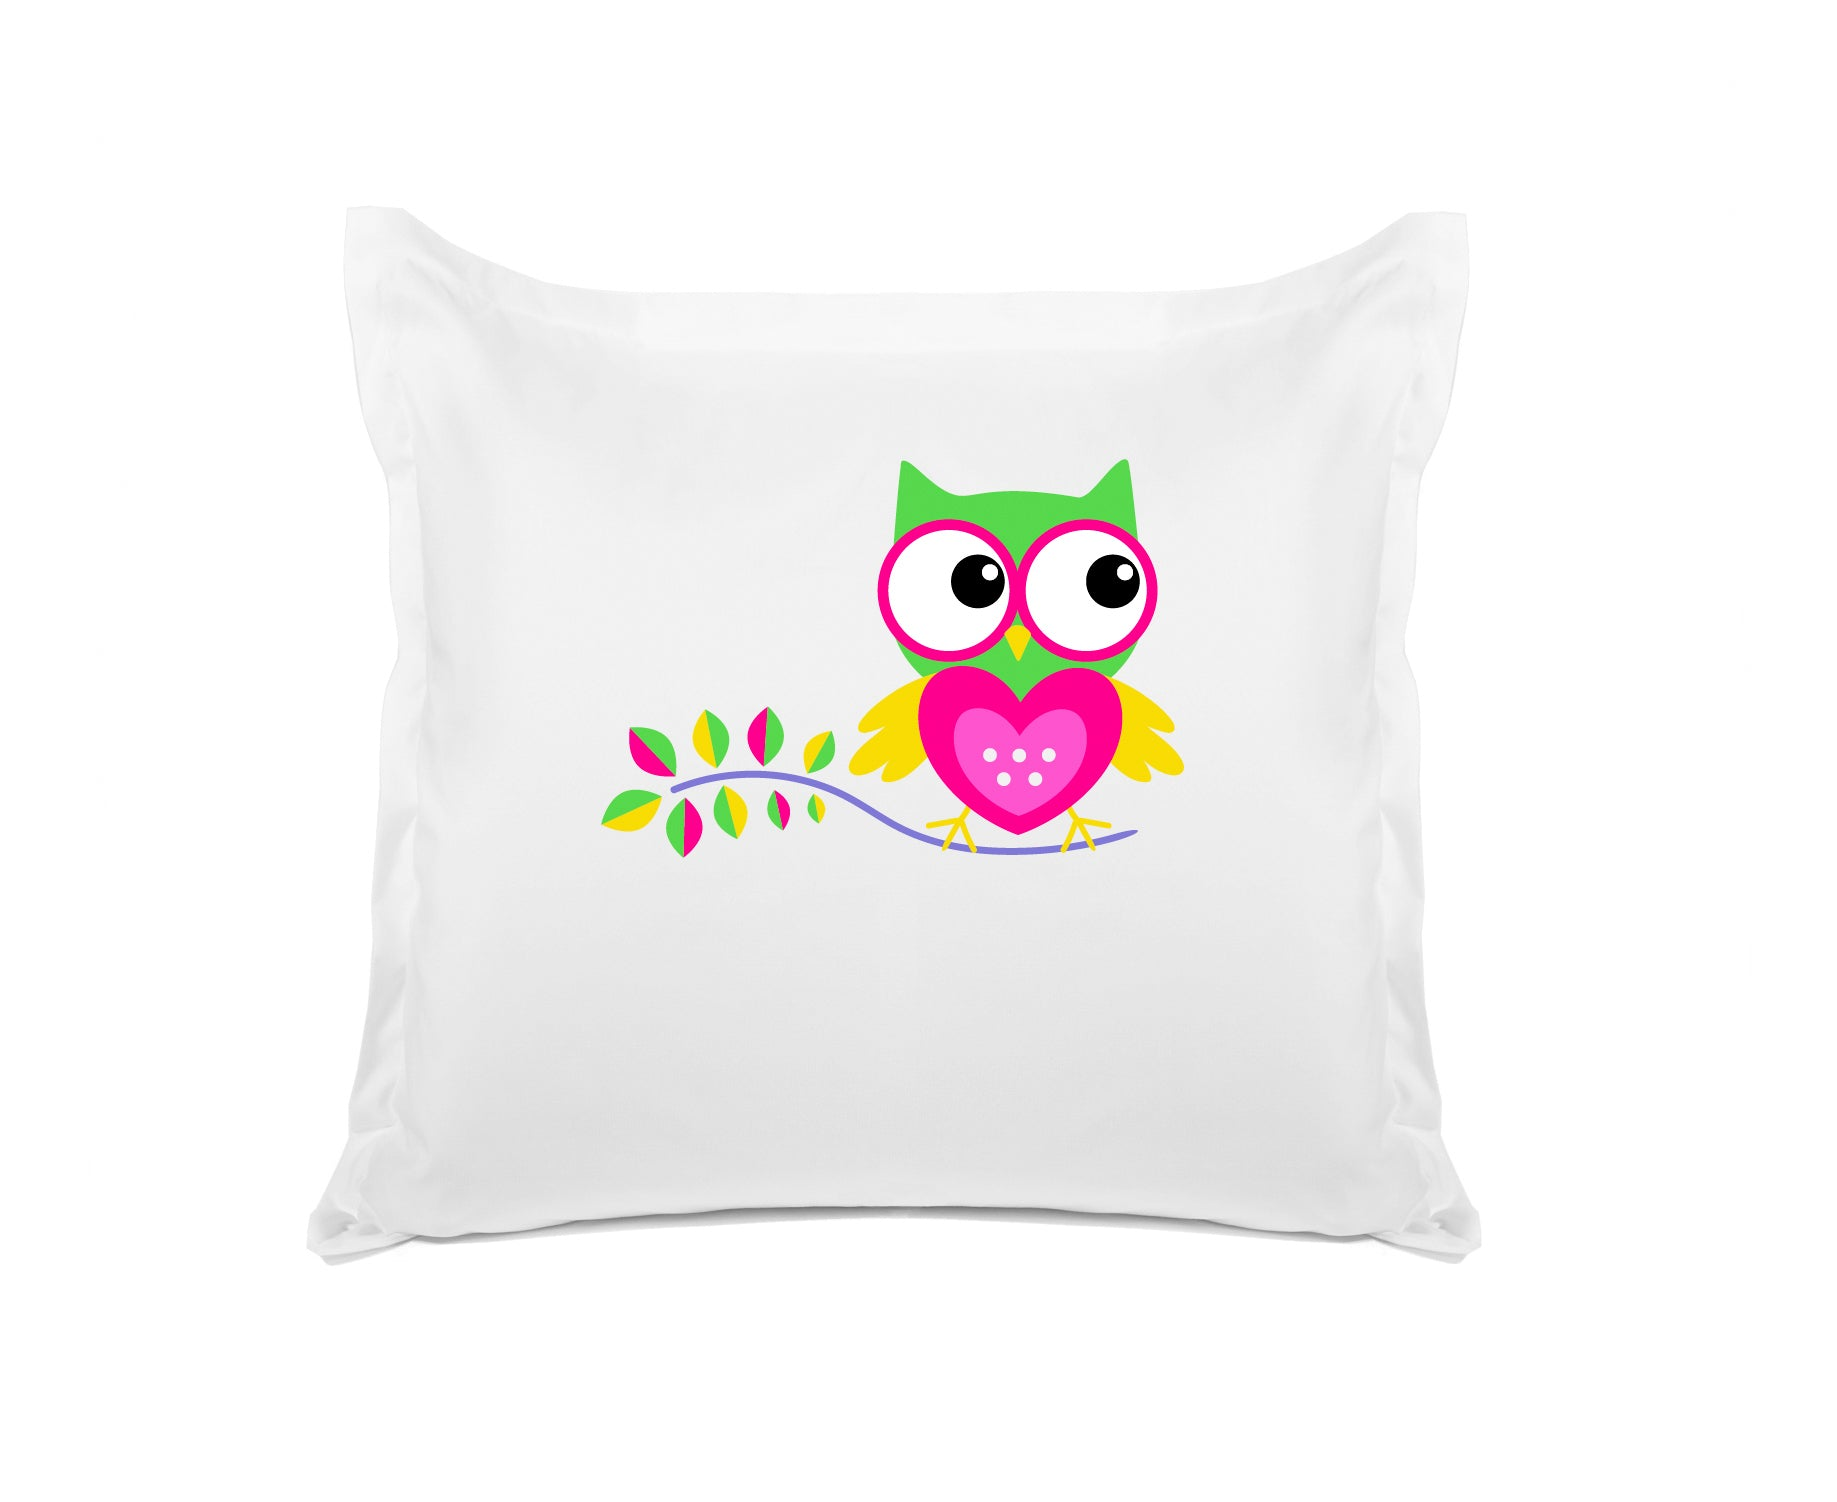 Hoot Hoot Personalized Kids Euro Sham Di Lewis Kids Bedding